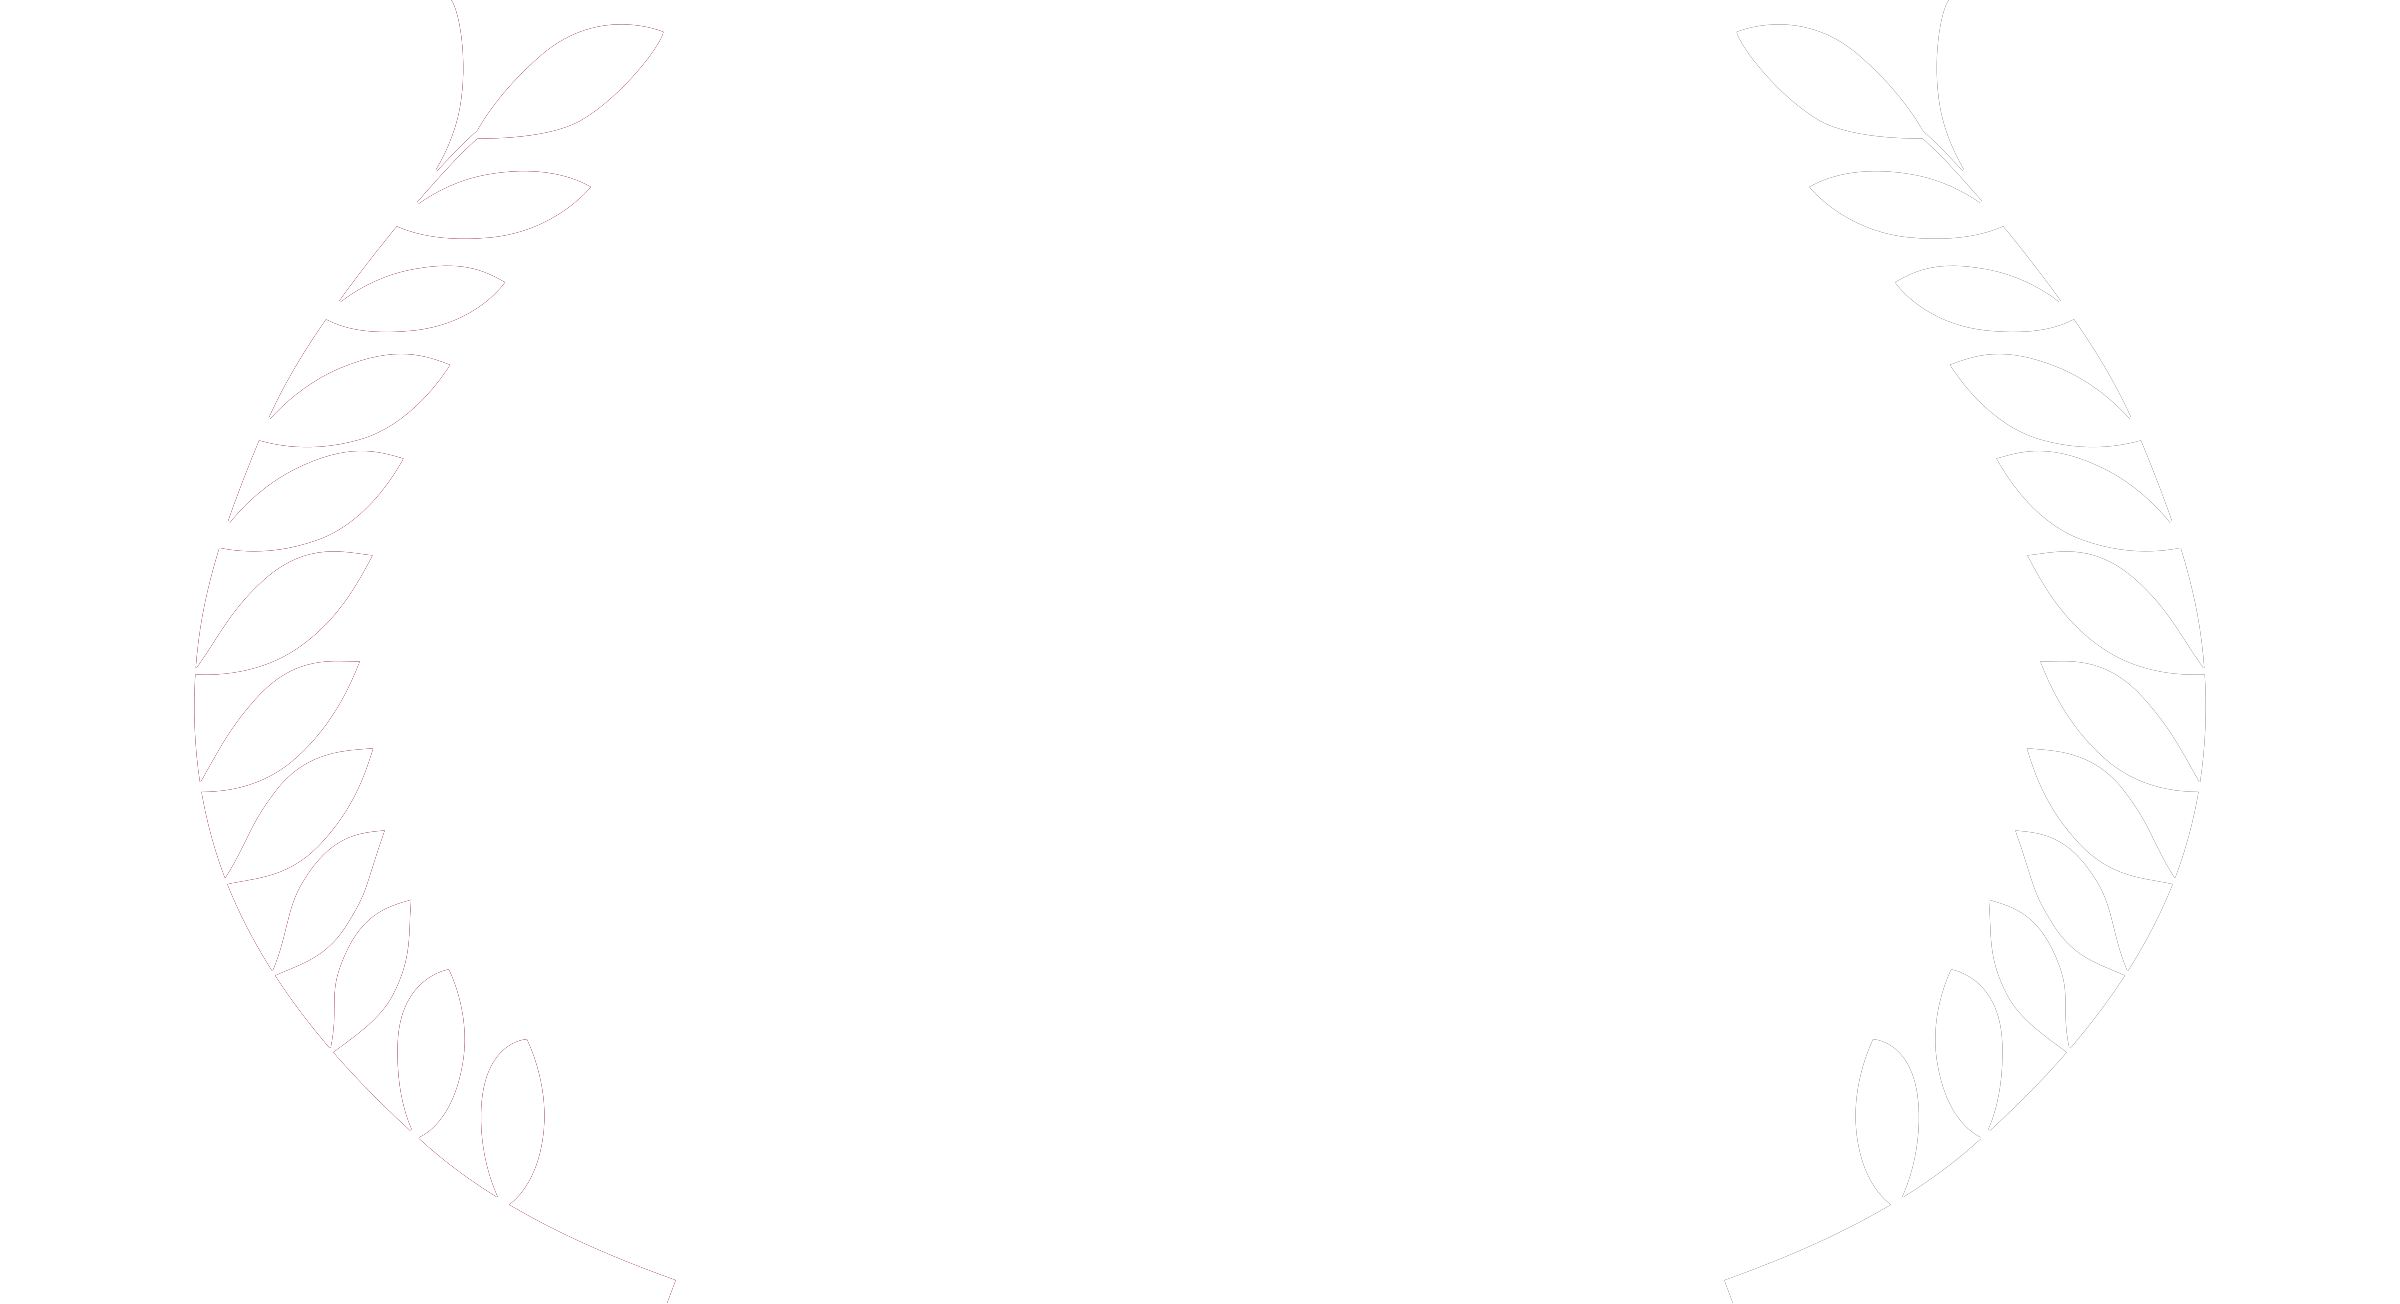 Nature Photography Award Winner 2015.png